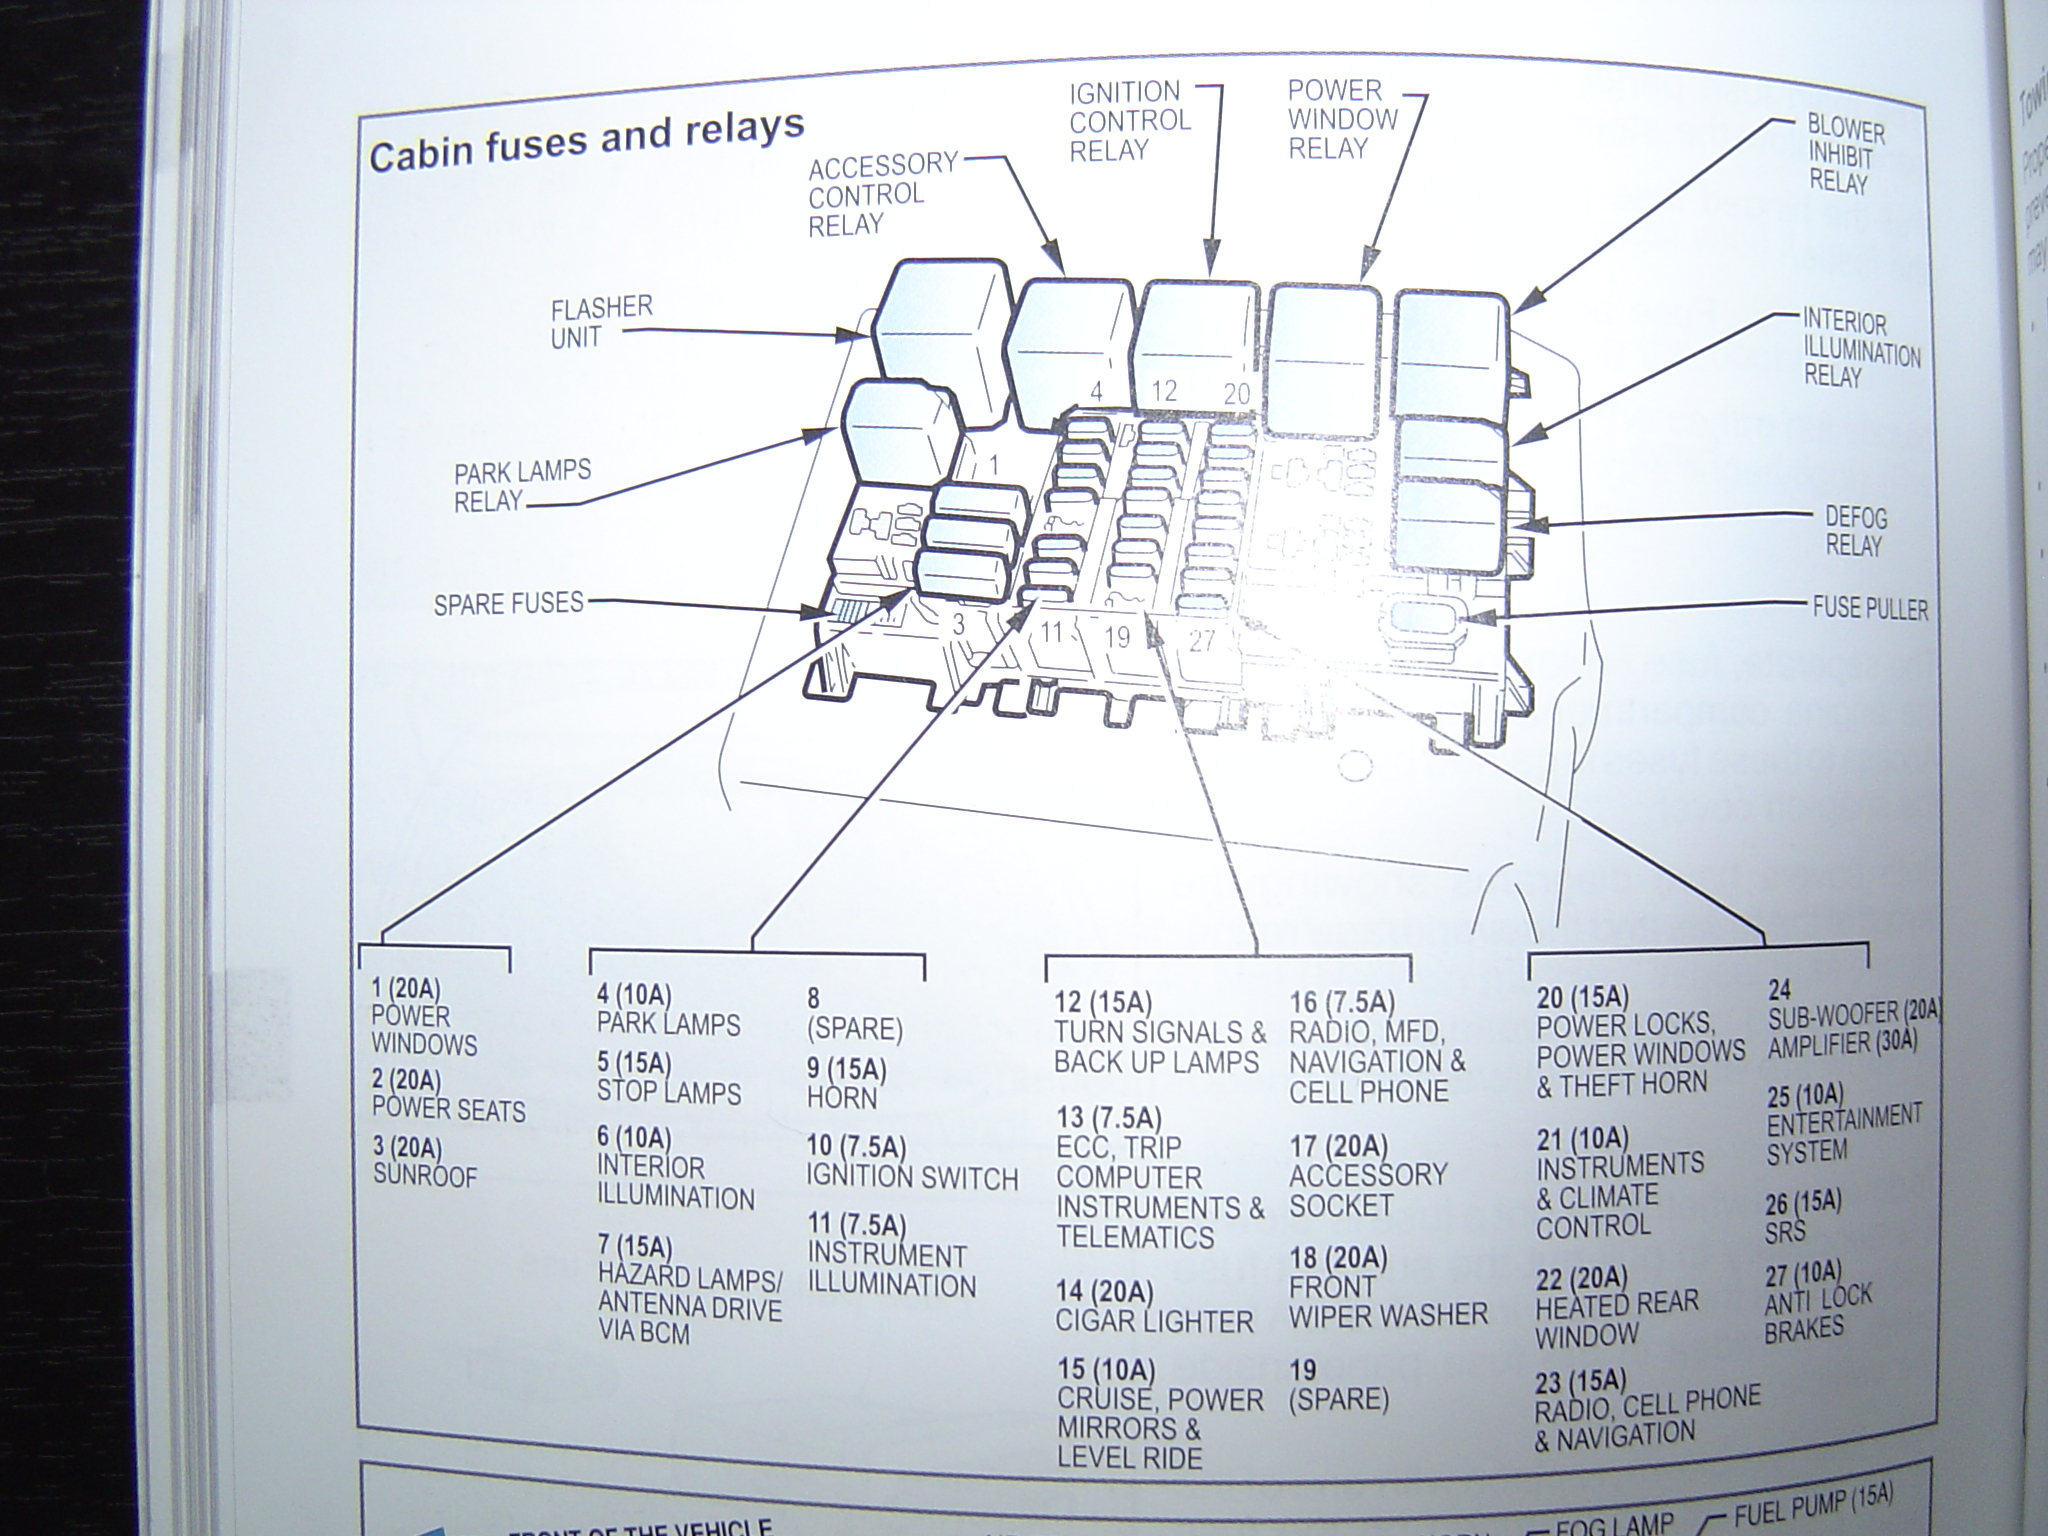 VY_CABIN_FUSEBOX cabin fuse box diagrams ba bf vx vy vz ve ford falcon au fuse box diagram at readyjetset.co